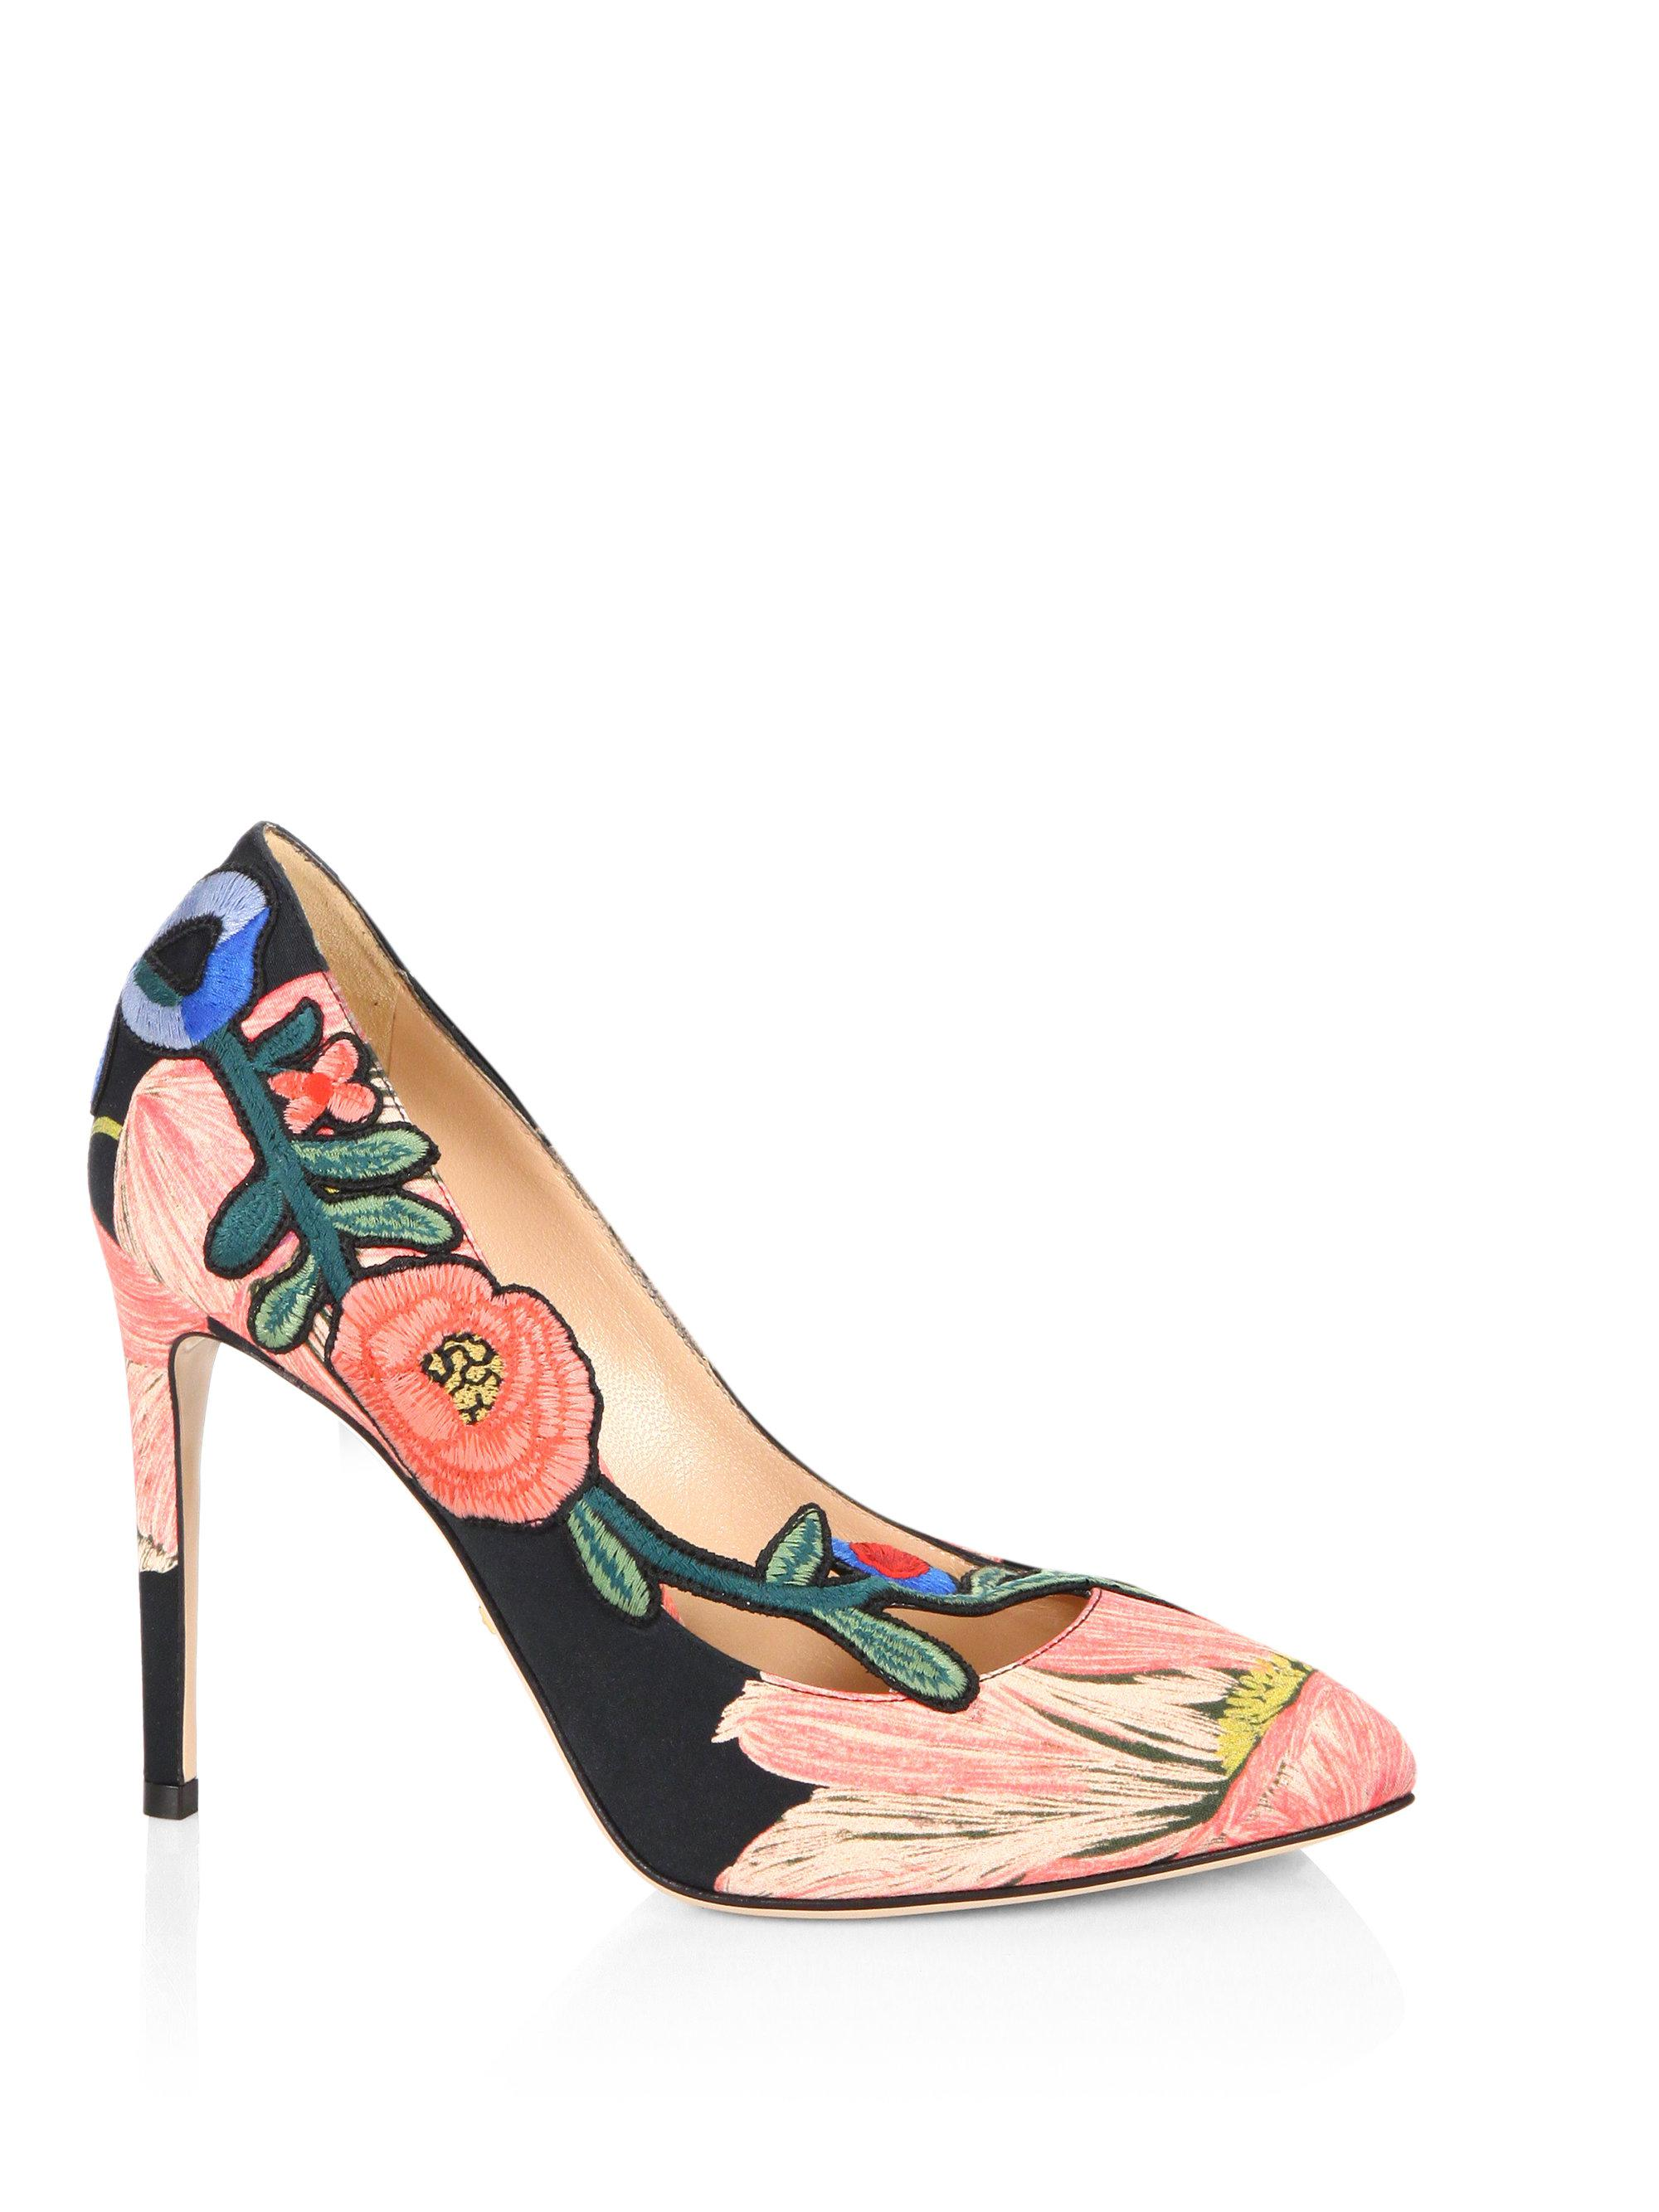 d22ca0ab50d Lyst - Gucci Ophelia Floral-embroidered Printed Satin Pumps in Pink